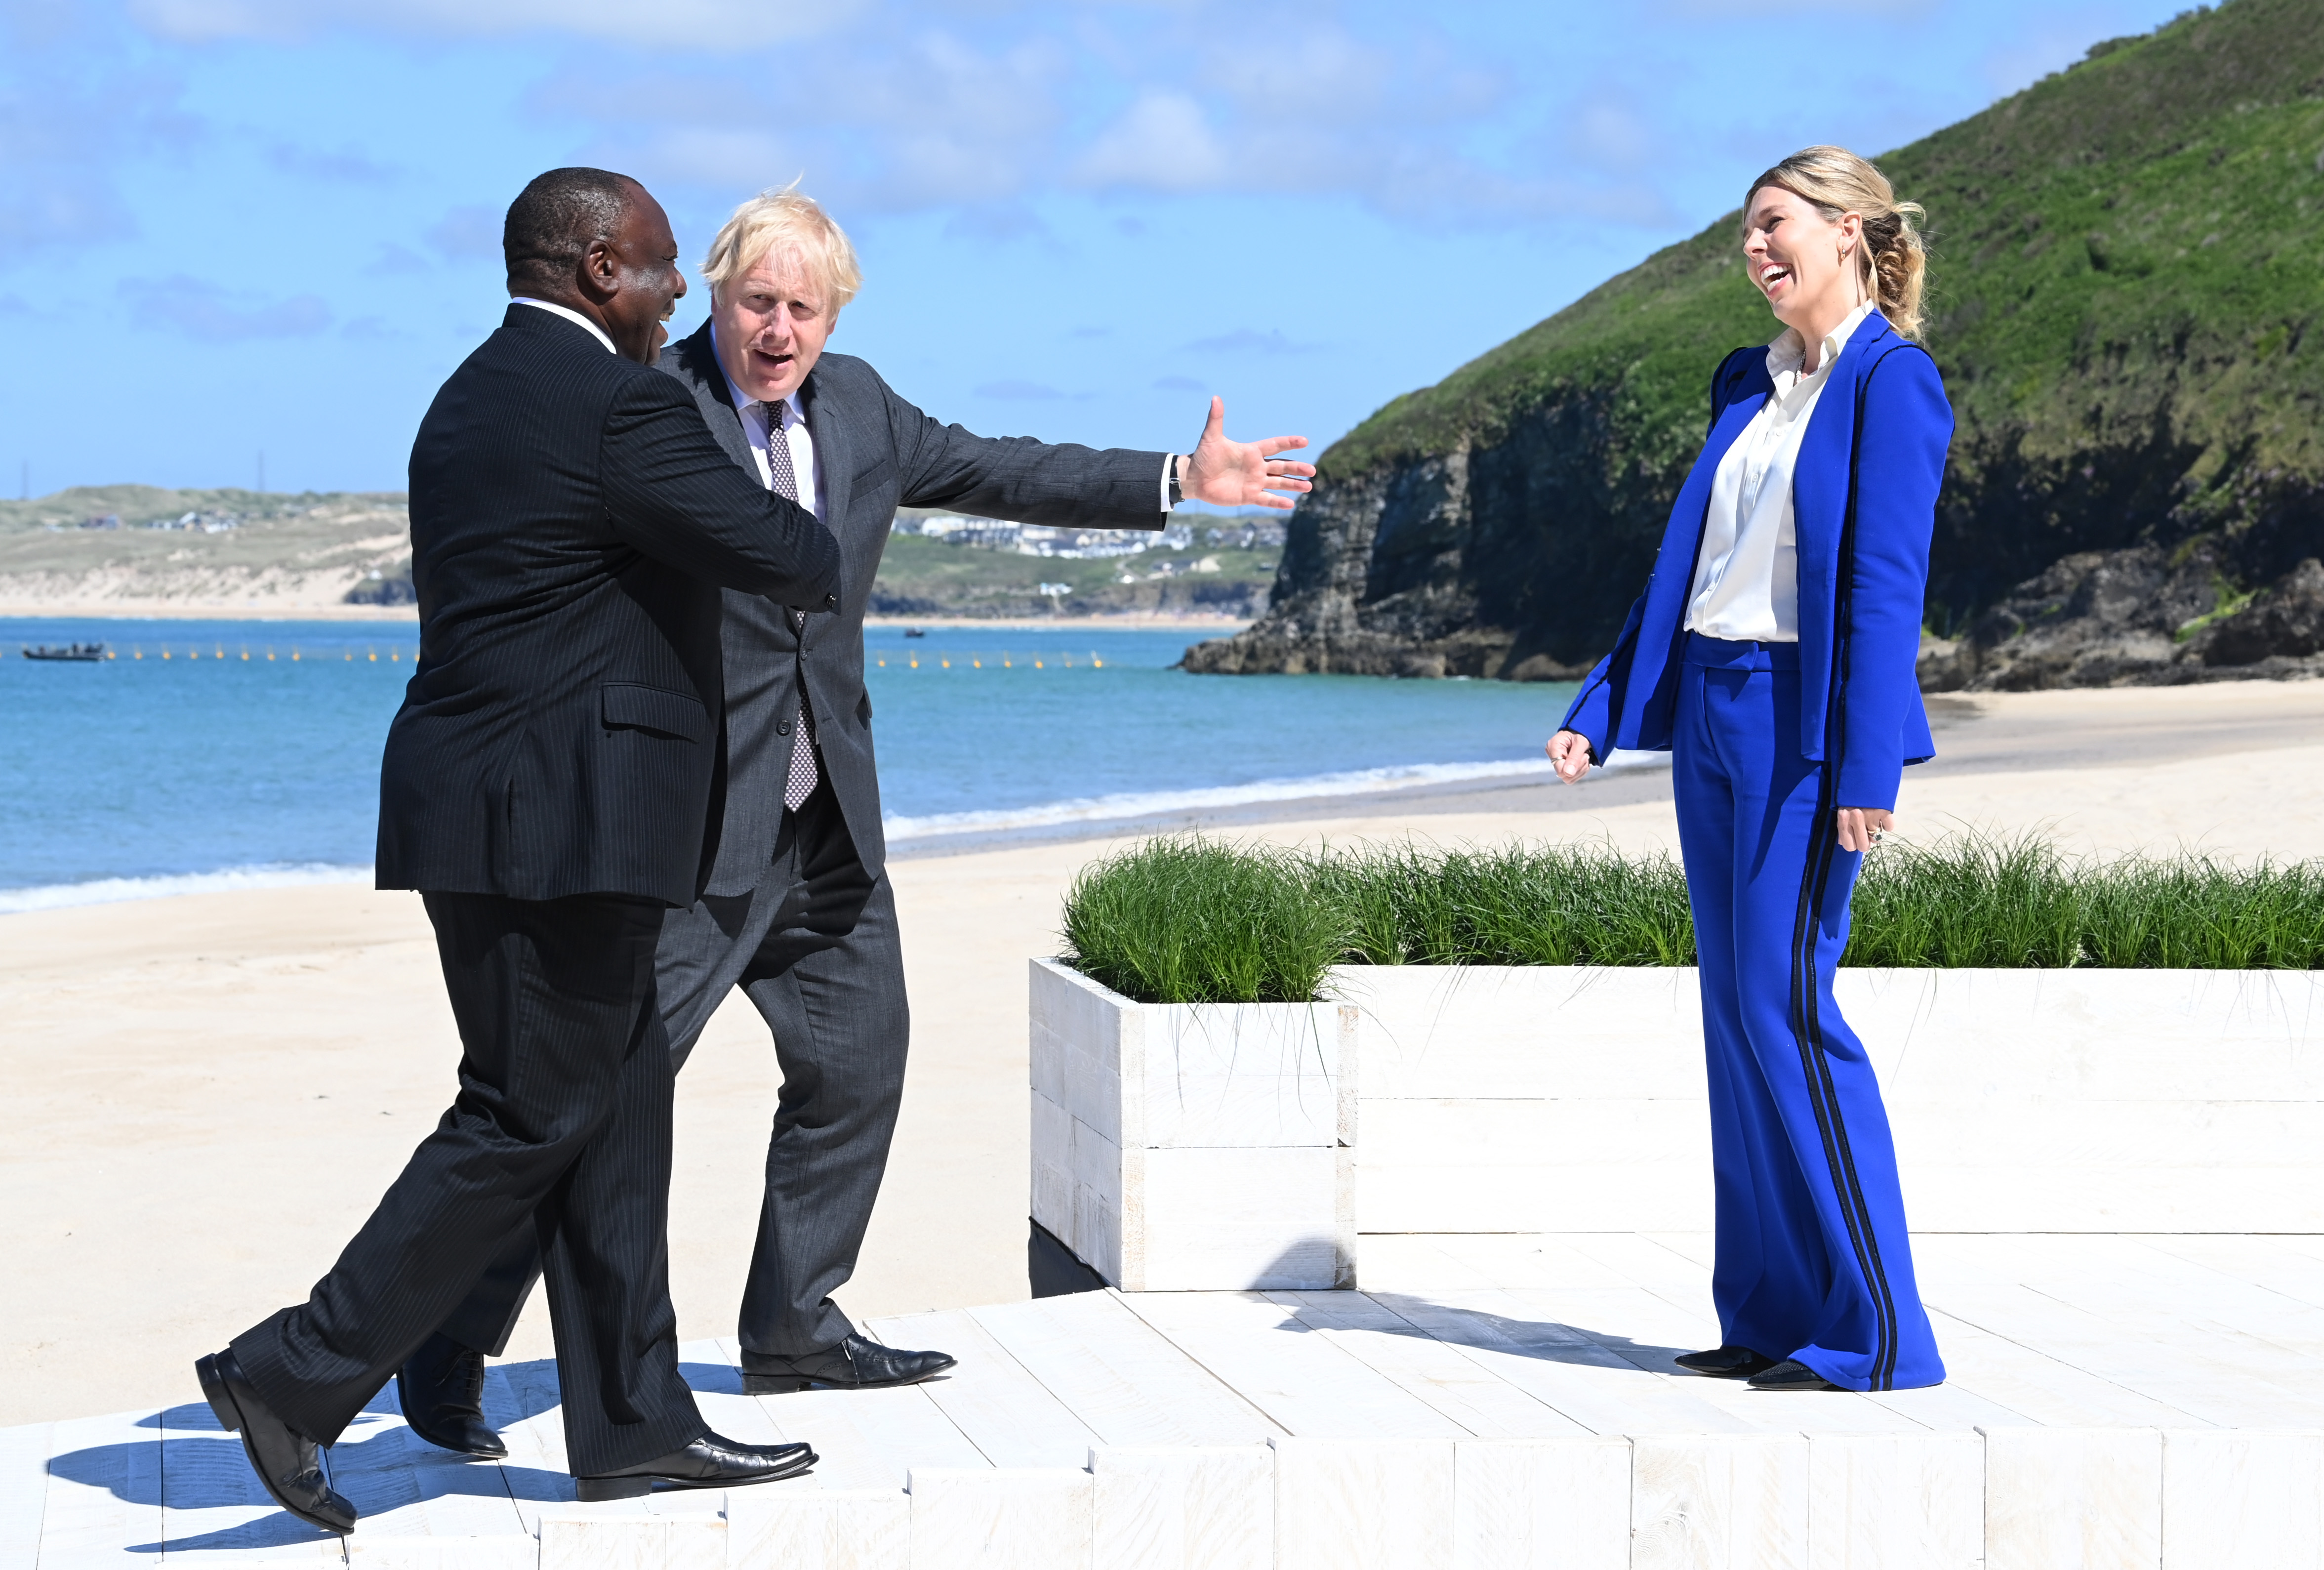 Boris Johnson and wife Carrie meet His Excellency Cyril Ramaphosa, President of South Africa at The Carbis Bay Hotel.12th June.Copyright: David Fisher/ G7 Cornwall 2021